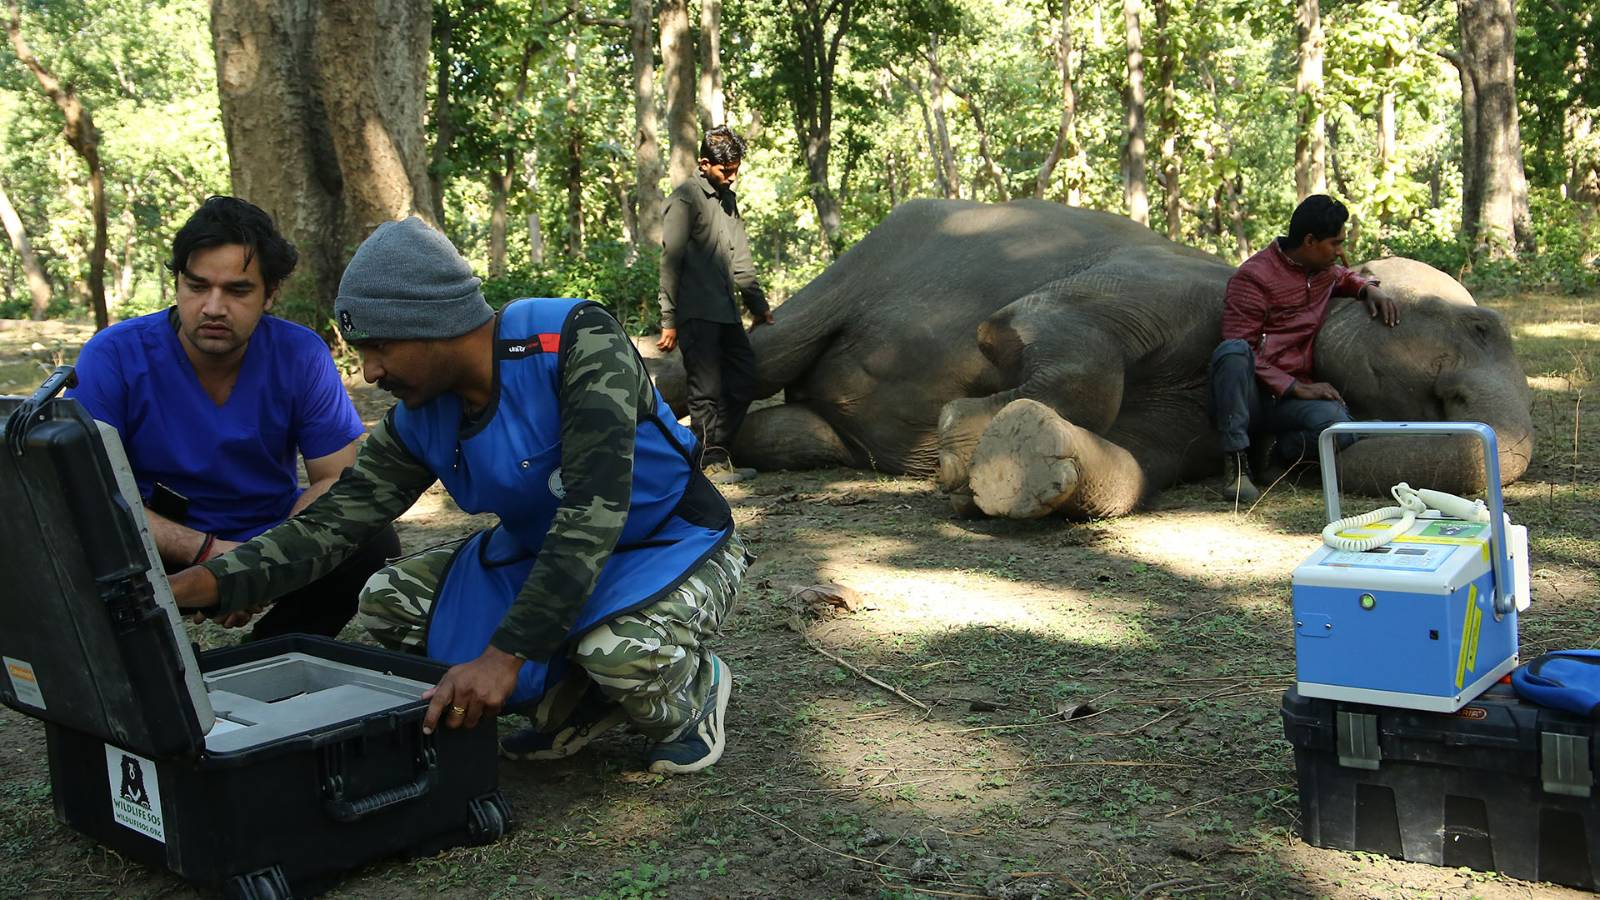 Off site treatment by WSOS team to treat wild elephant